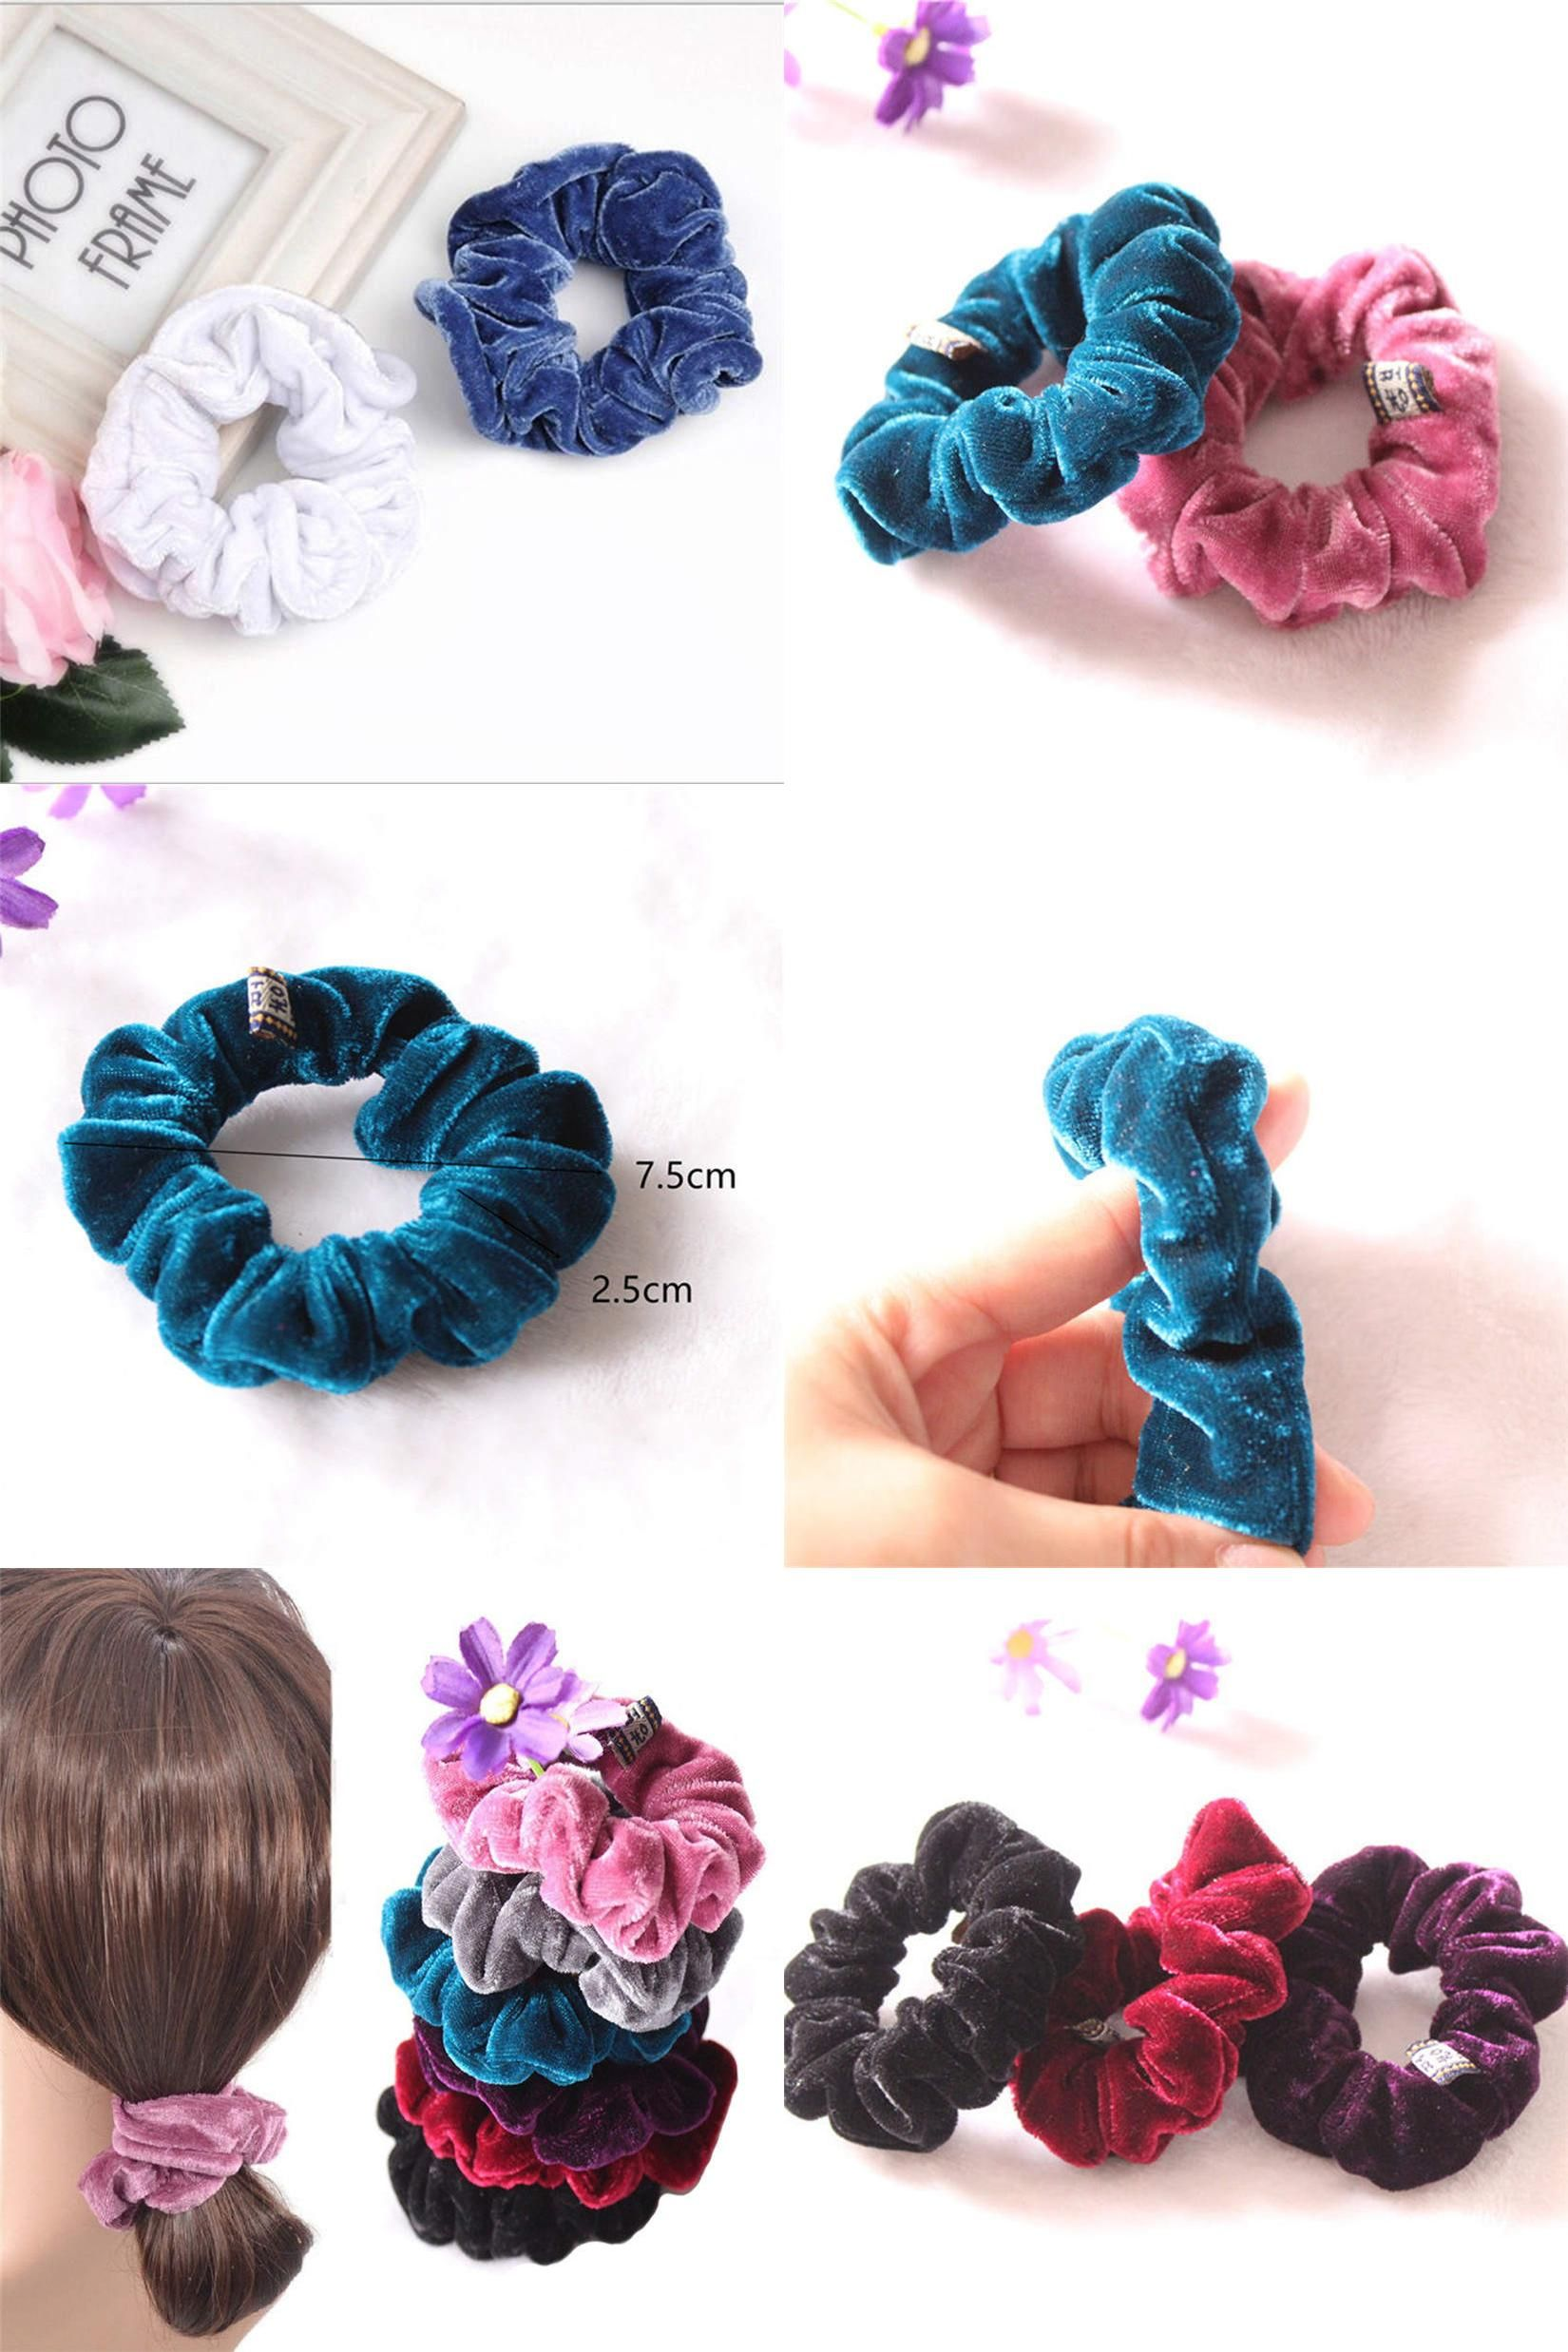 4pcs Candy Elastic Accessories Hair Scrunchie Ponytail Holder Scrunchy Hairband